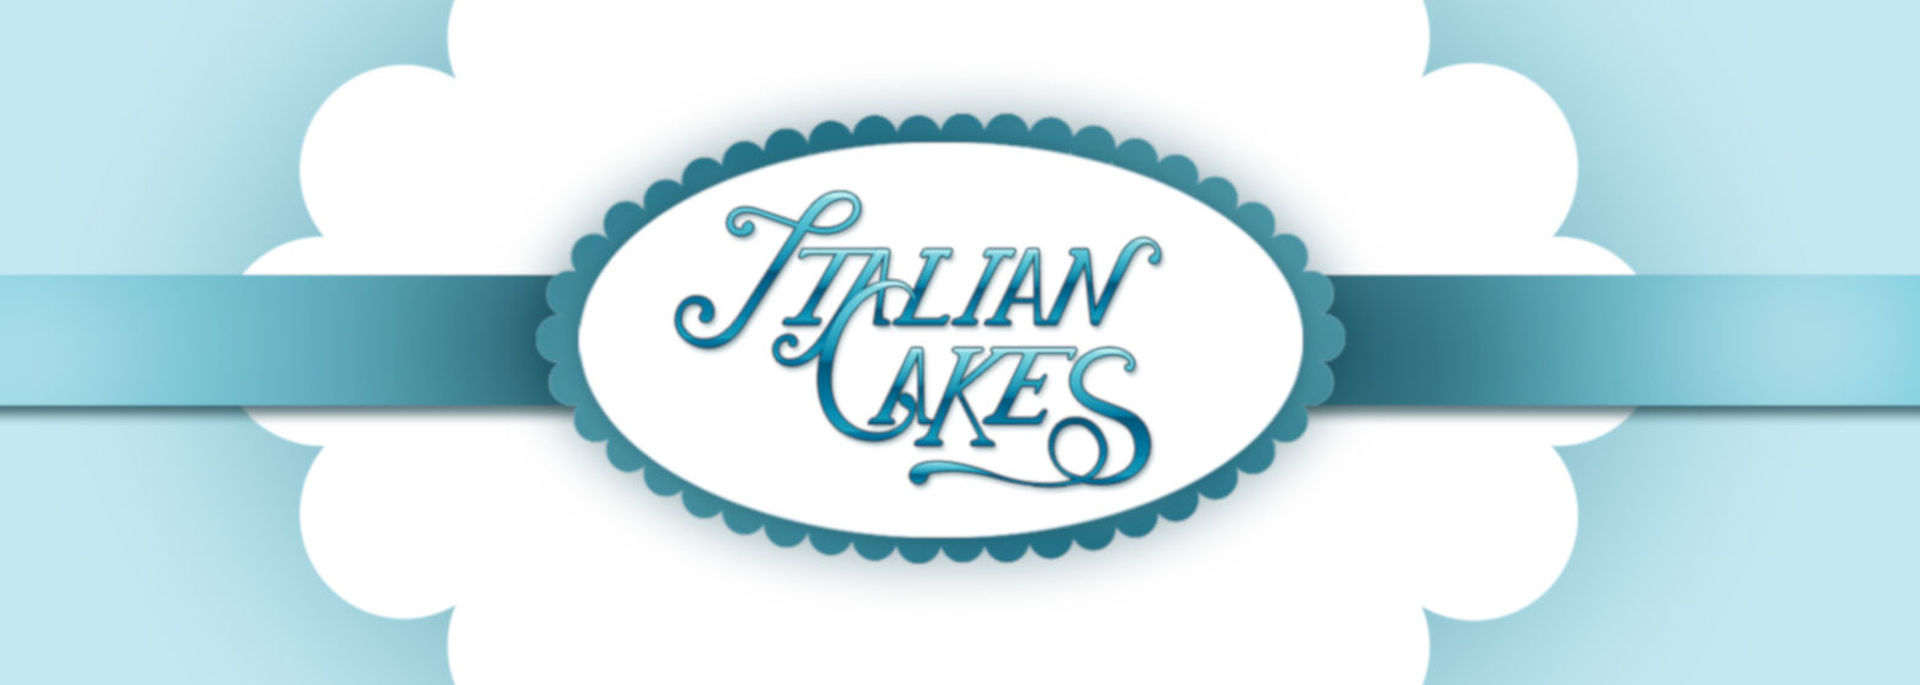 #Italian Cakes channel